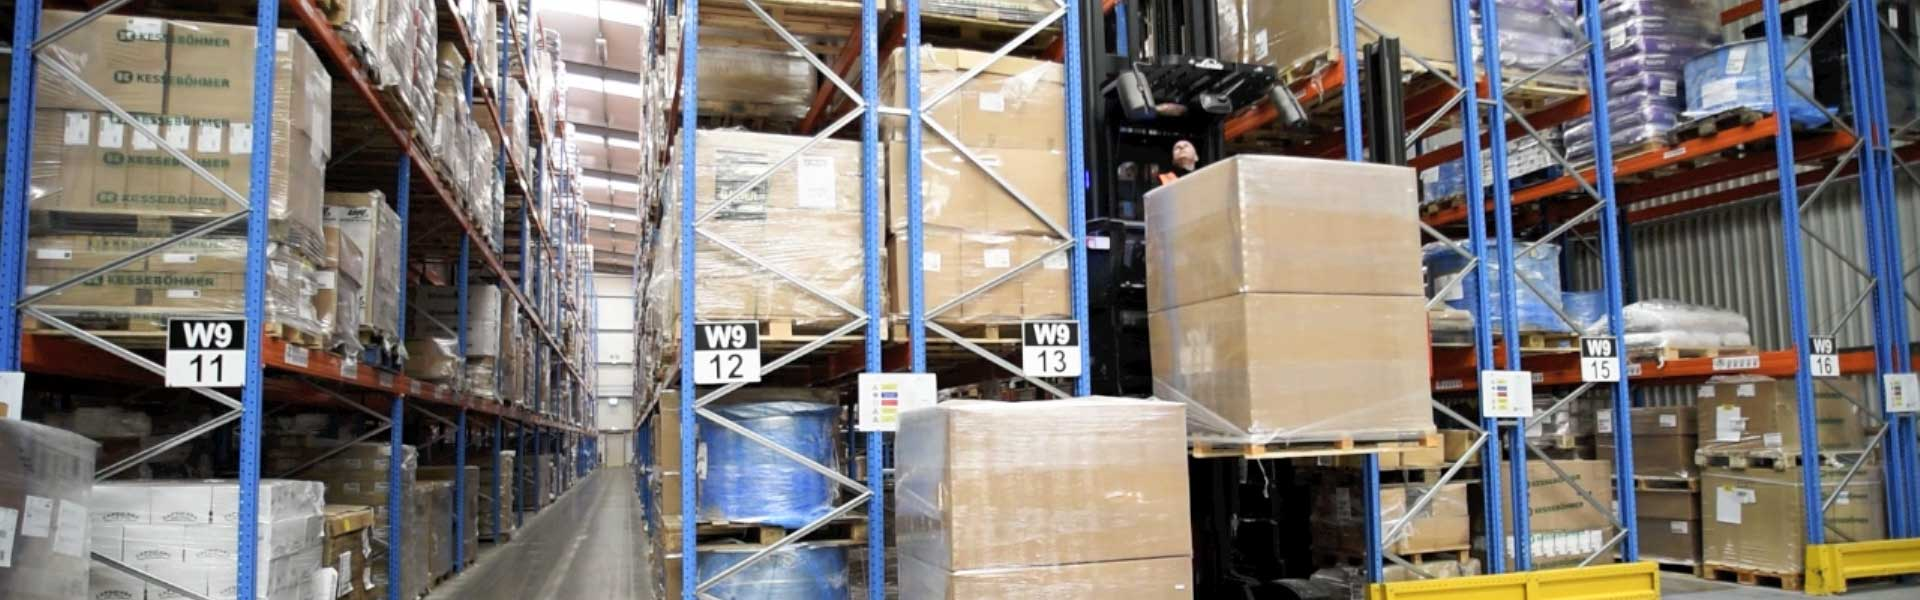 Stiller - Warehousing, Distribution and Commercial Property